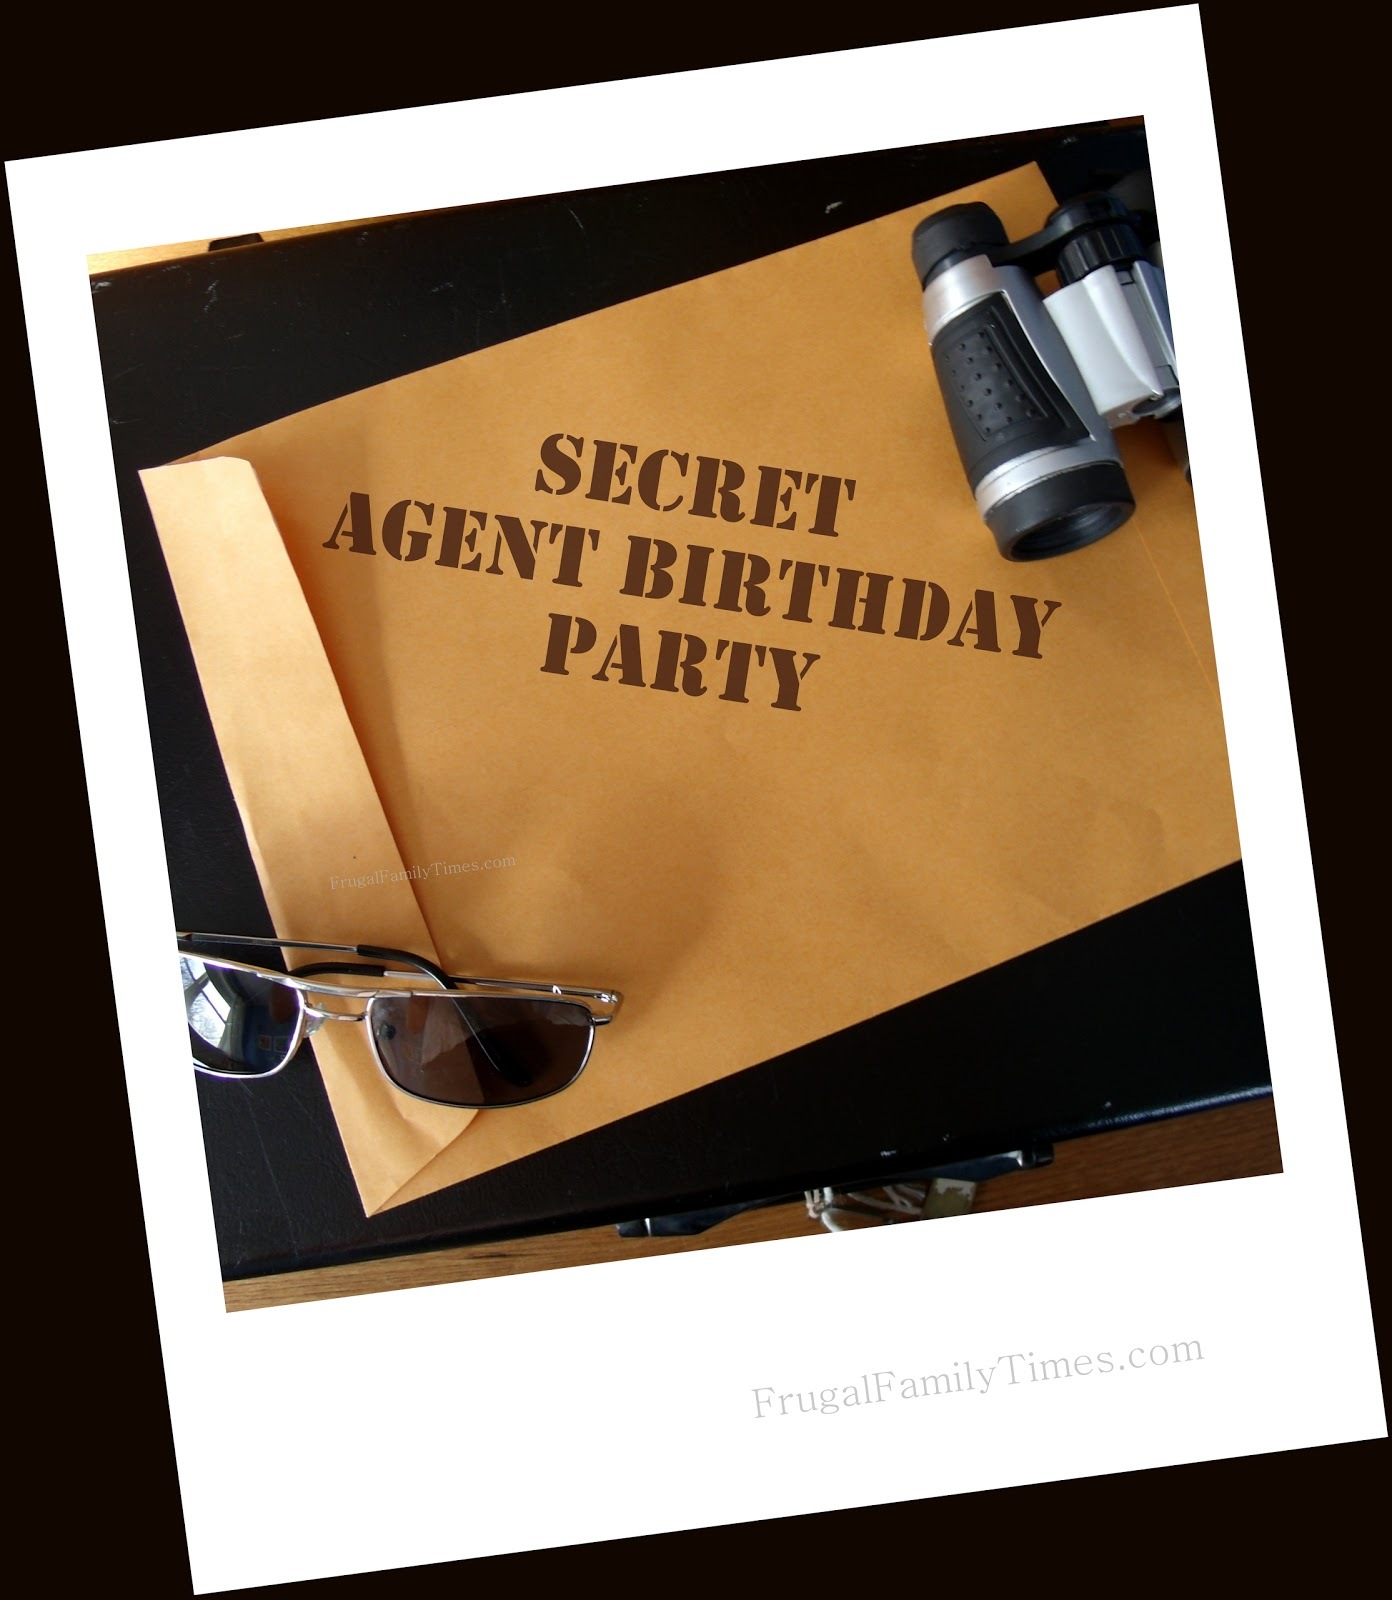 Secret Agent Birthday Party: Ideas, Printables, Games and More ...